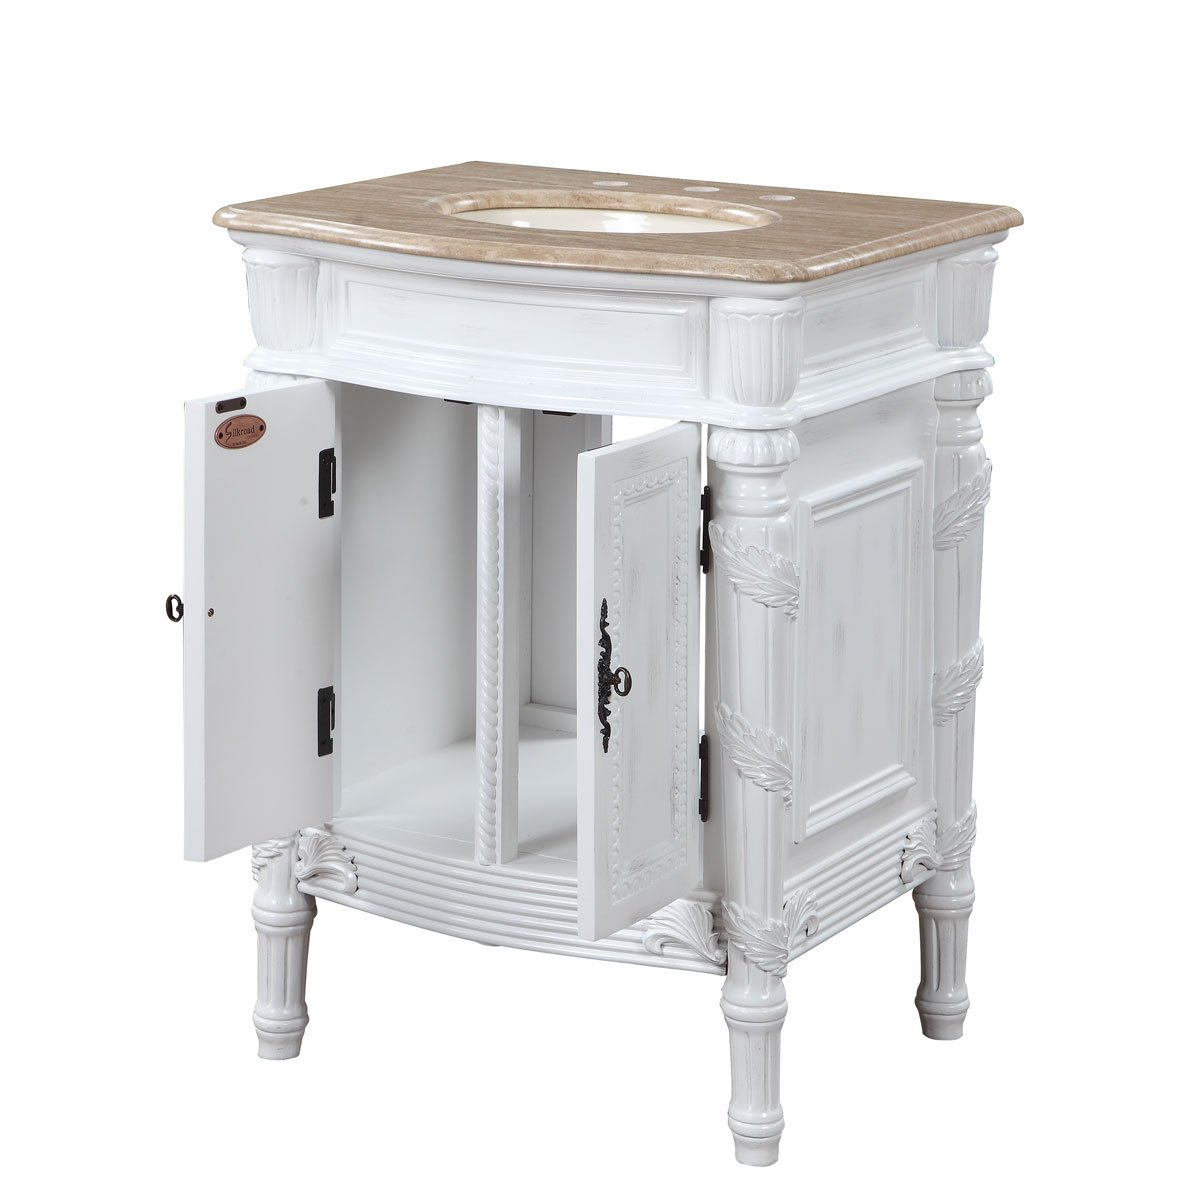 Silkroad Exclusive Travertine Top Single Sink Bathroom Vanity with White Oak Finish Cabinet, 26-Inch 3